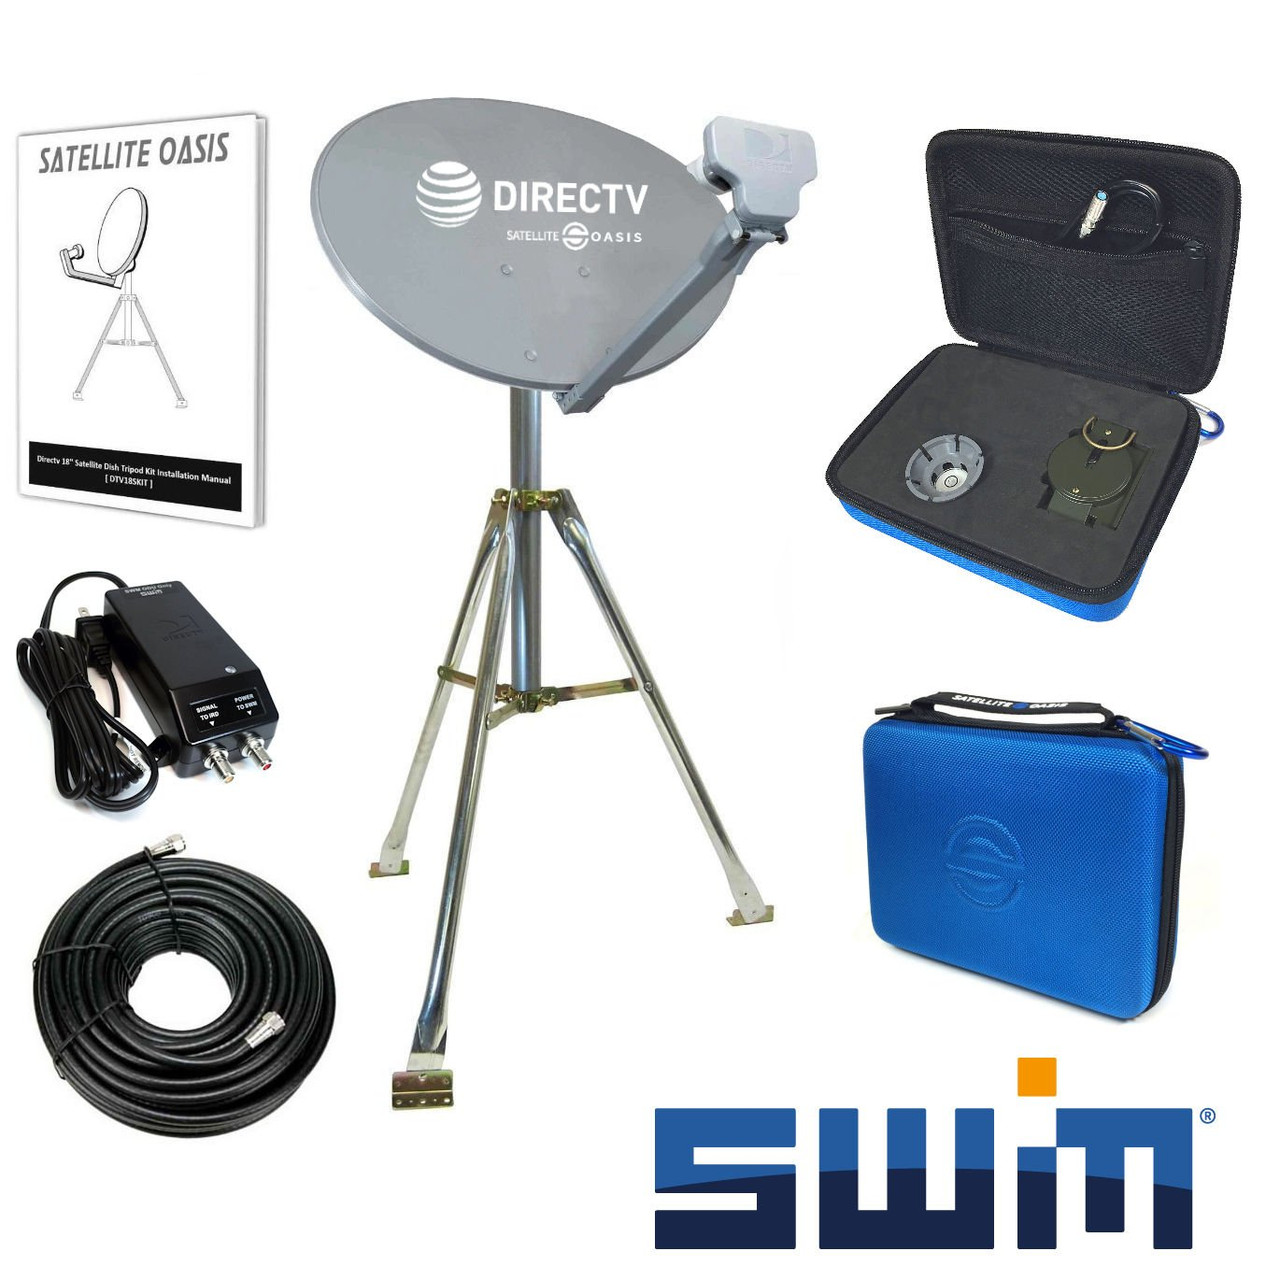 directv swim hdtv satellite dish tripod kit for rv / mobile / portable -  satellite oasis